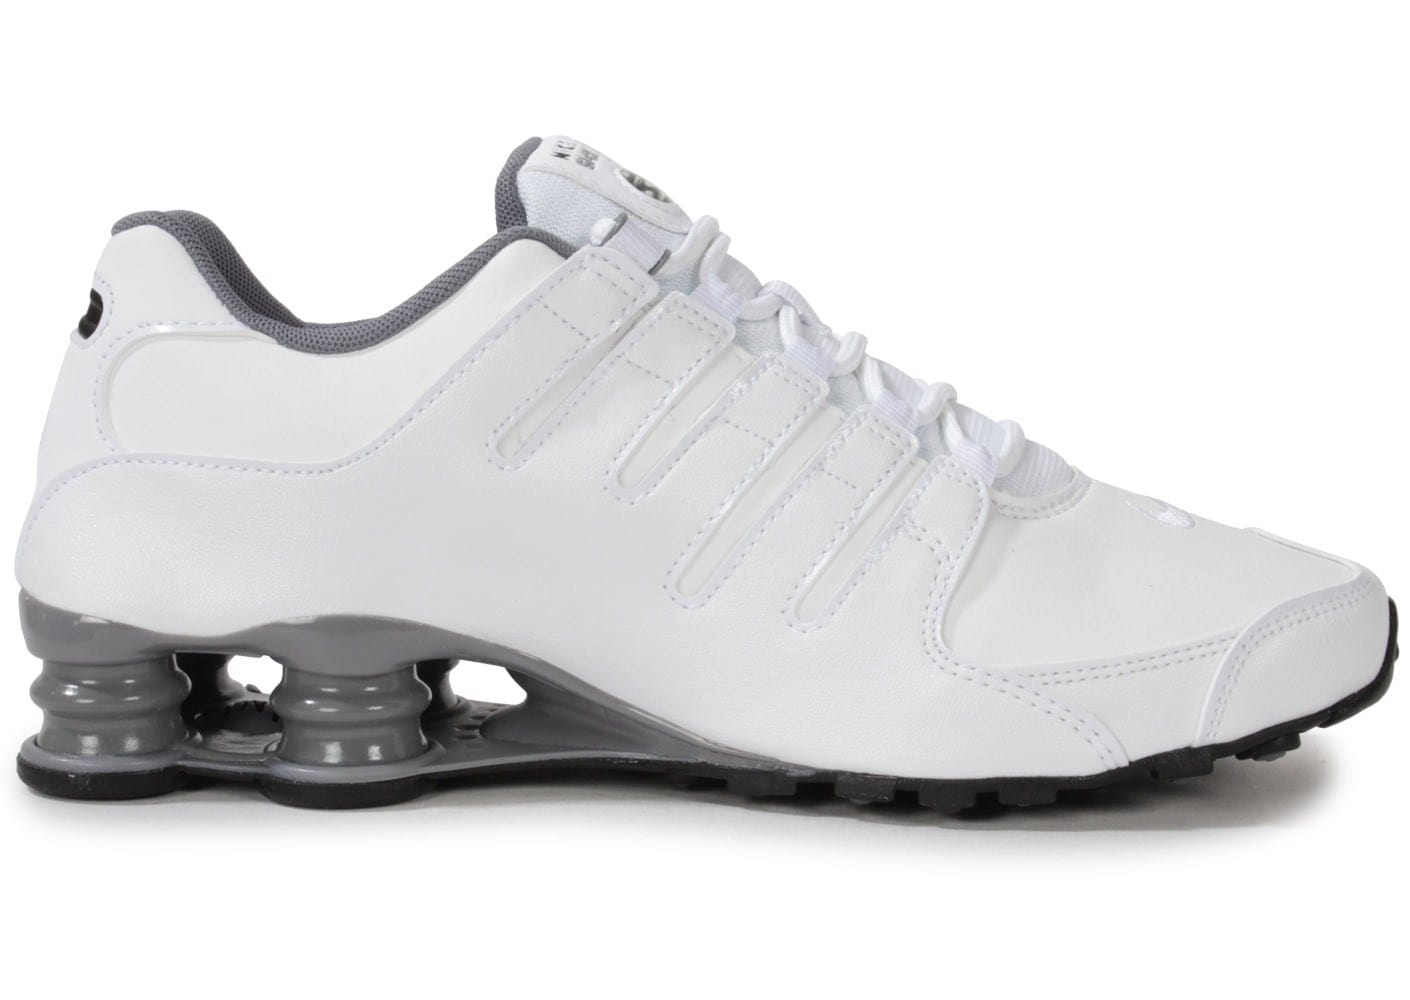 buy popular 4e2ed c1361 ... Chaussures Nike Shox Nz Blanche vue dessous ...